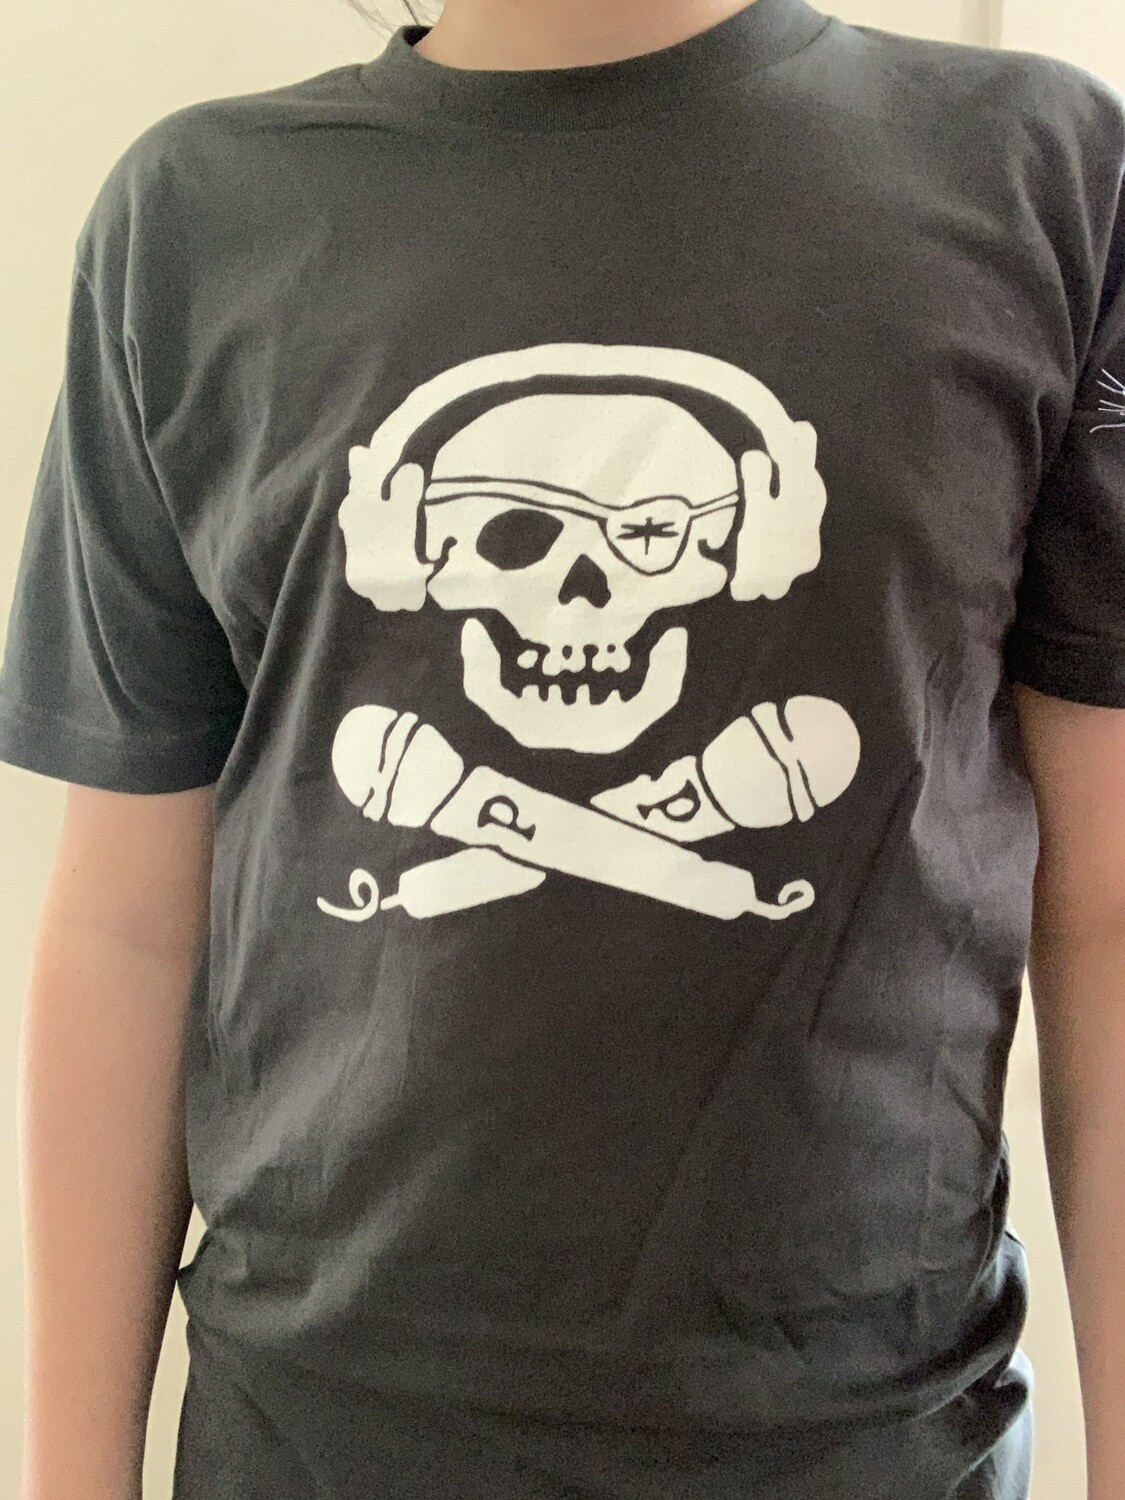 Vintage 2005 Pink PiRaTE logo T shirt (can be signed)